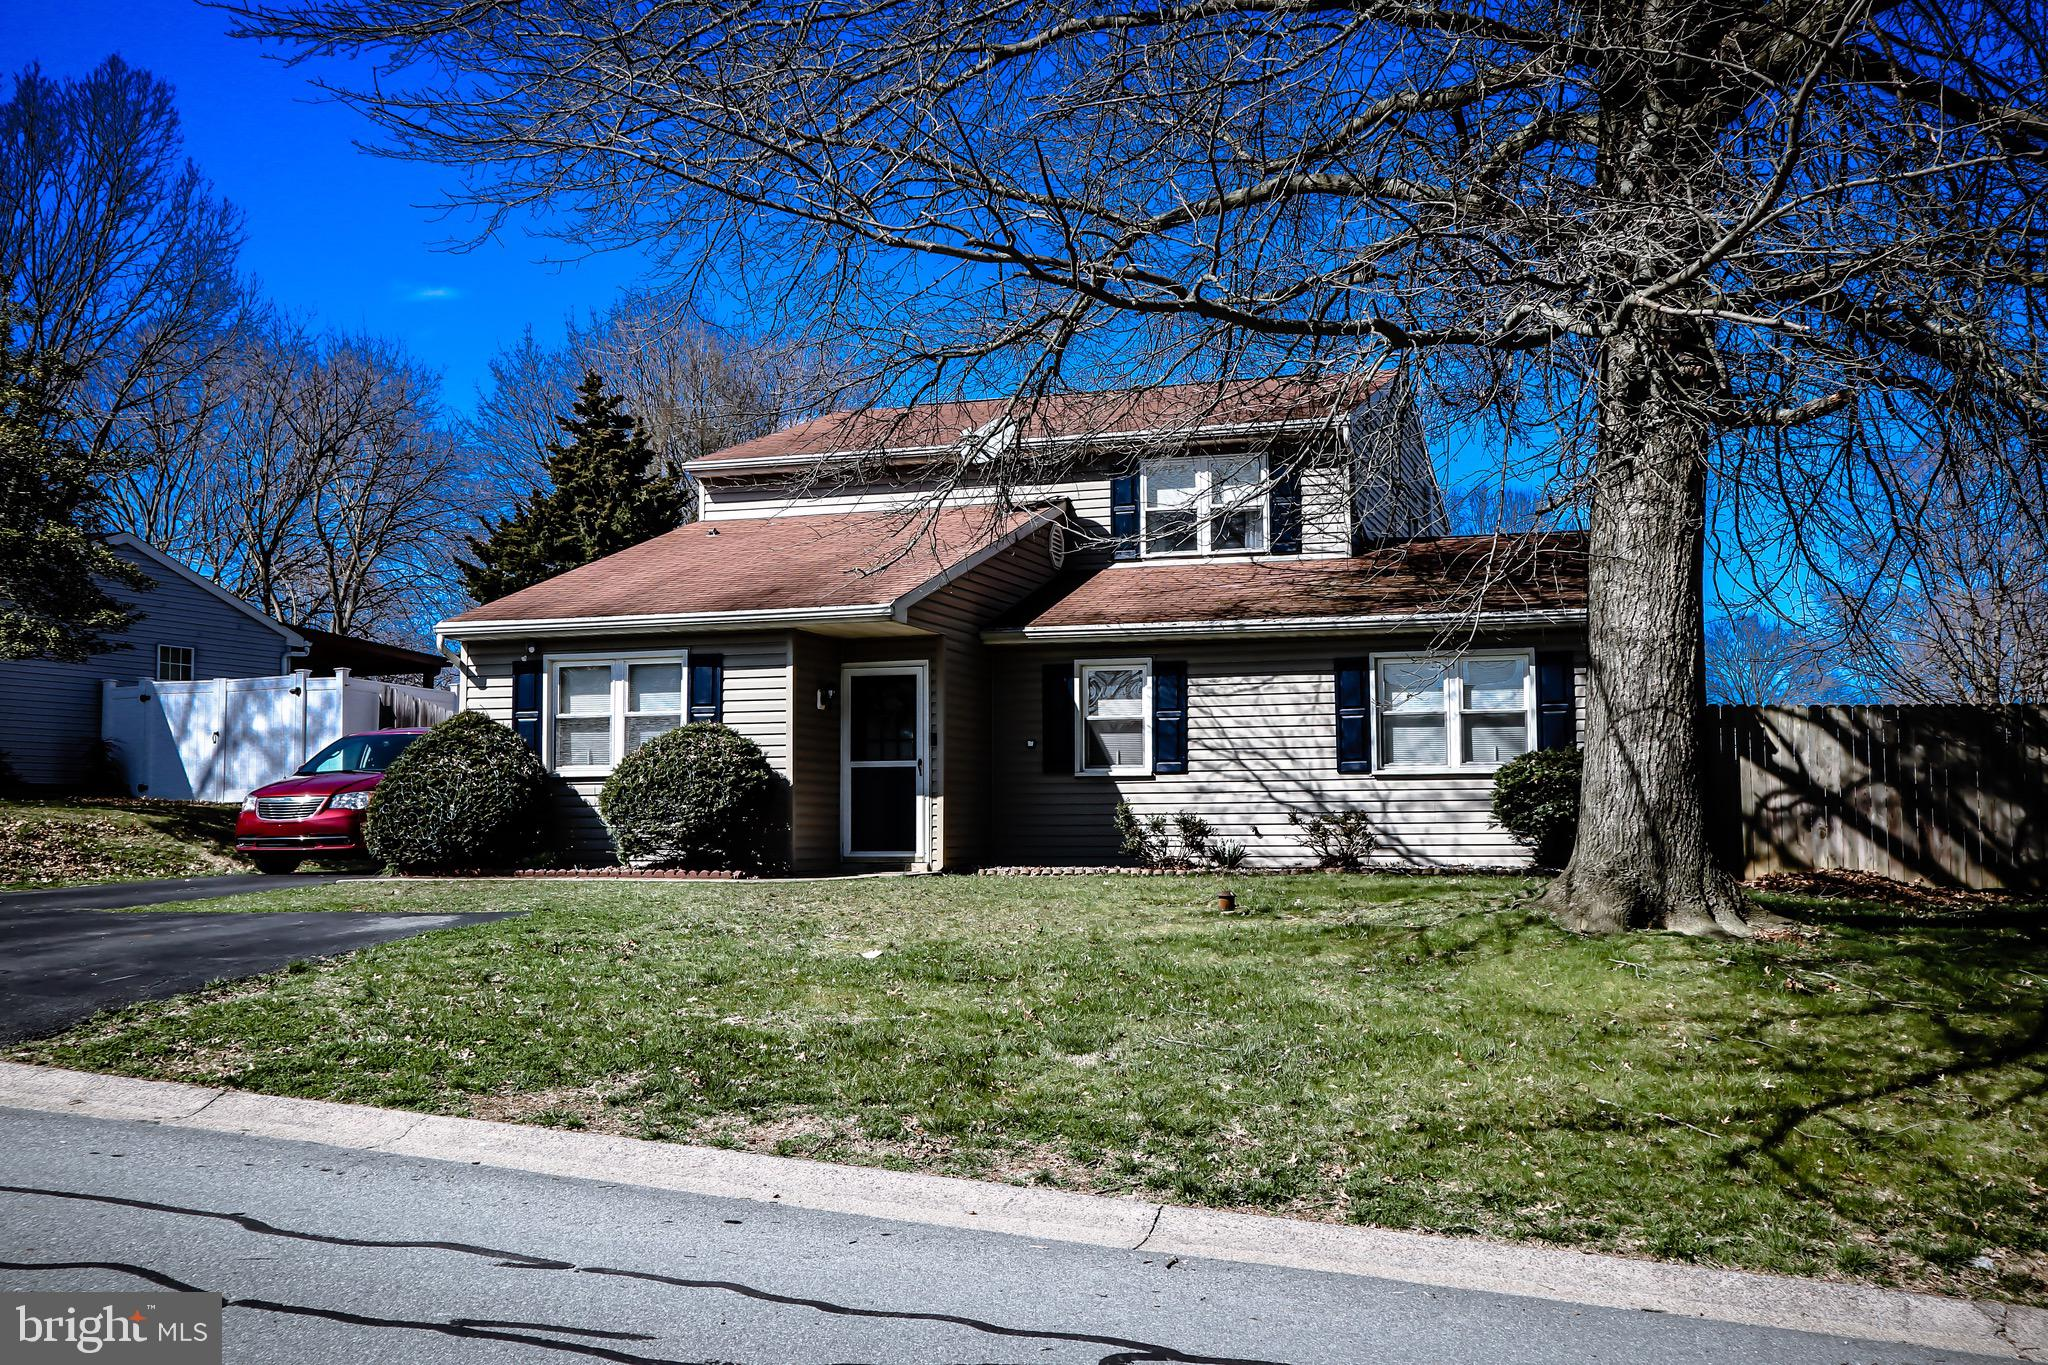 734 SUNSET ROAD, WRIGHTSVILLE, PA 17368